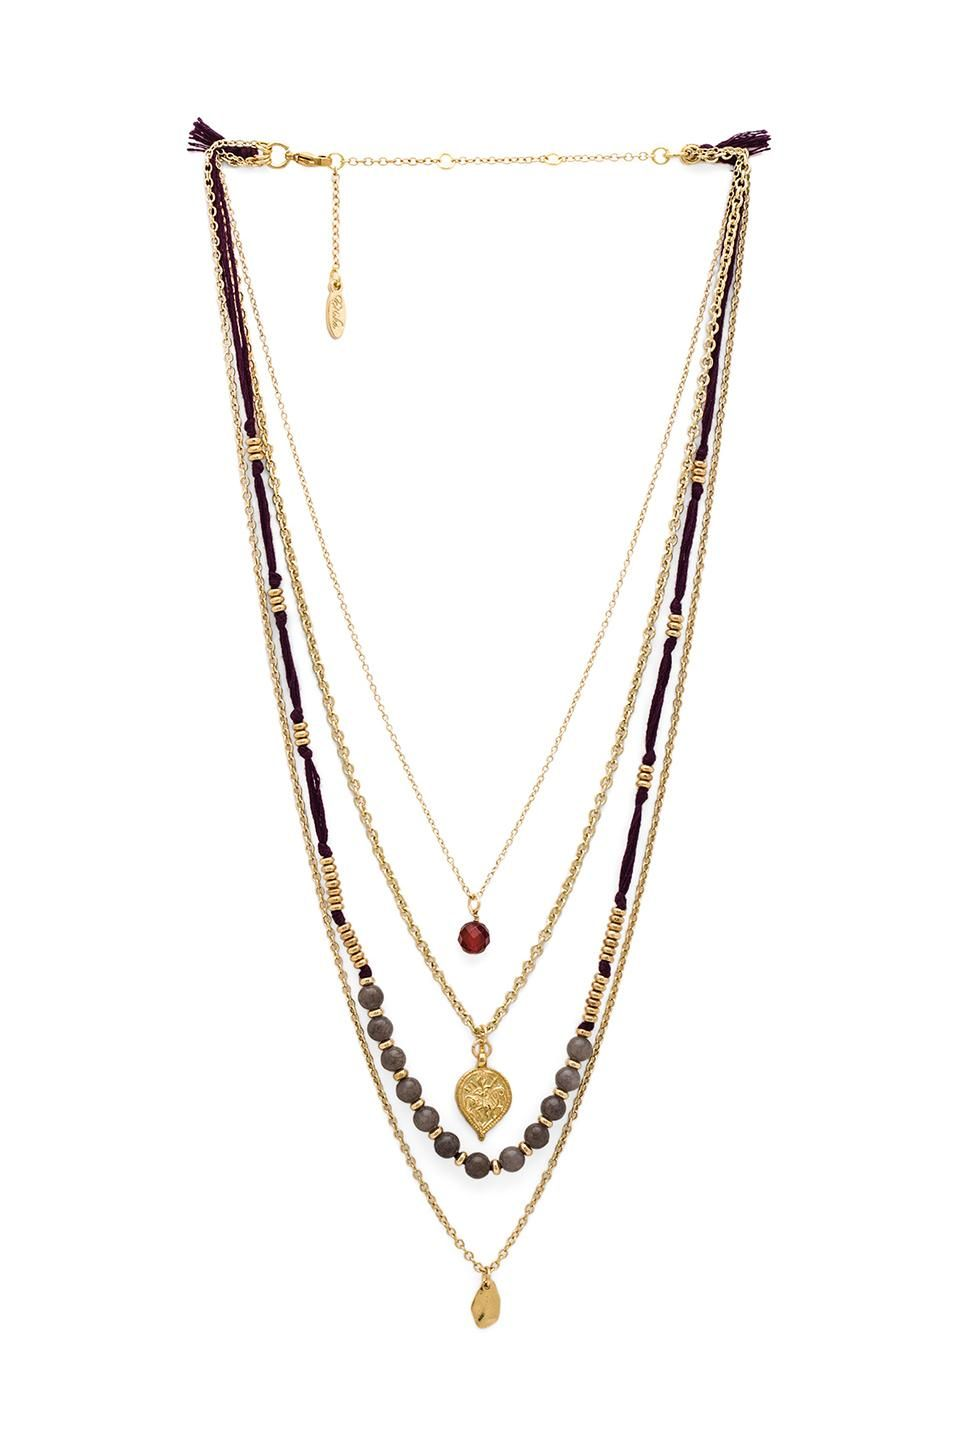 Ettika Tassel Layered Necklace in Metallic Gold UQR0Q